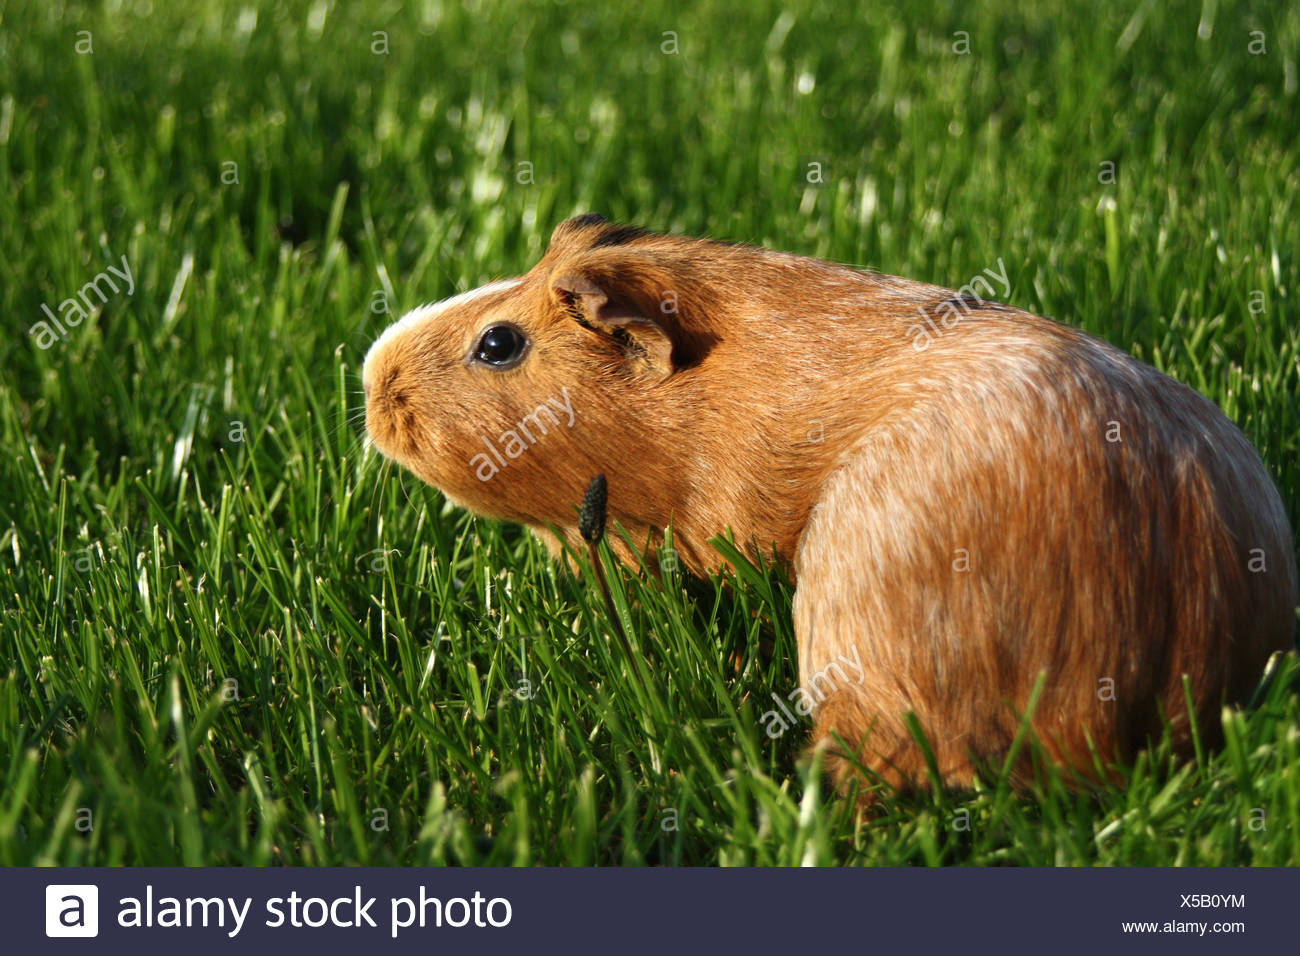 pet green rodent - Stock Image